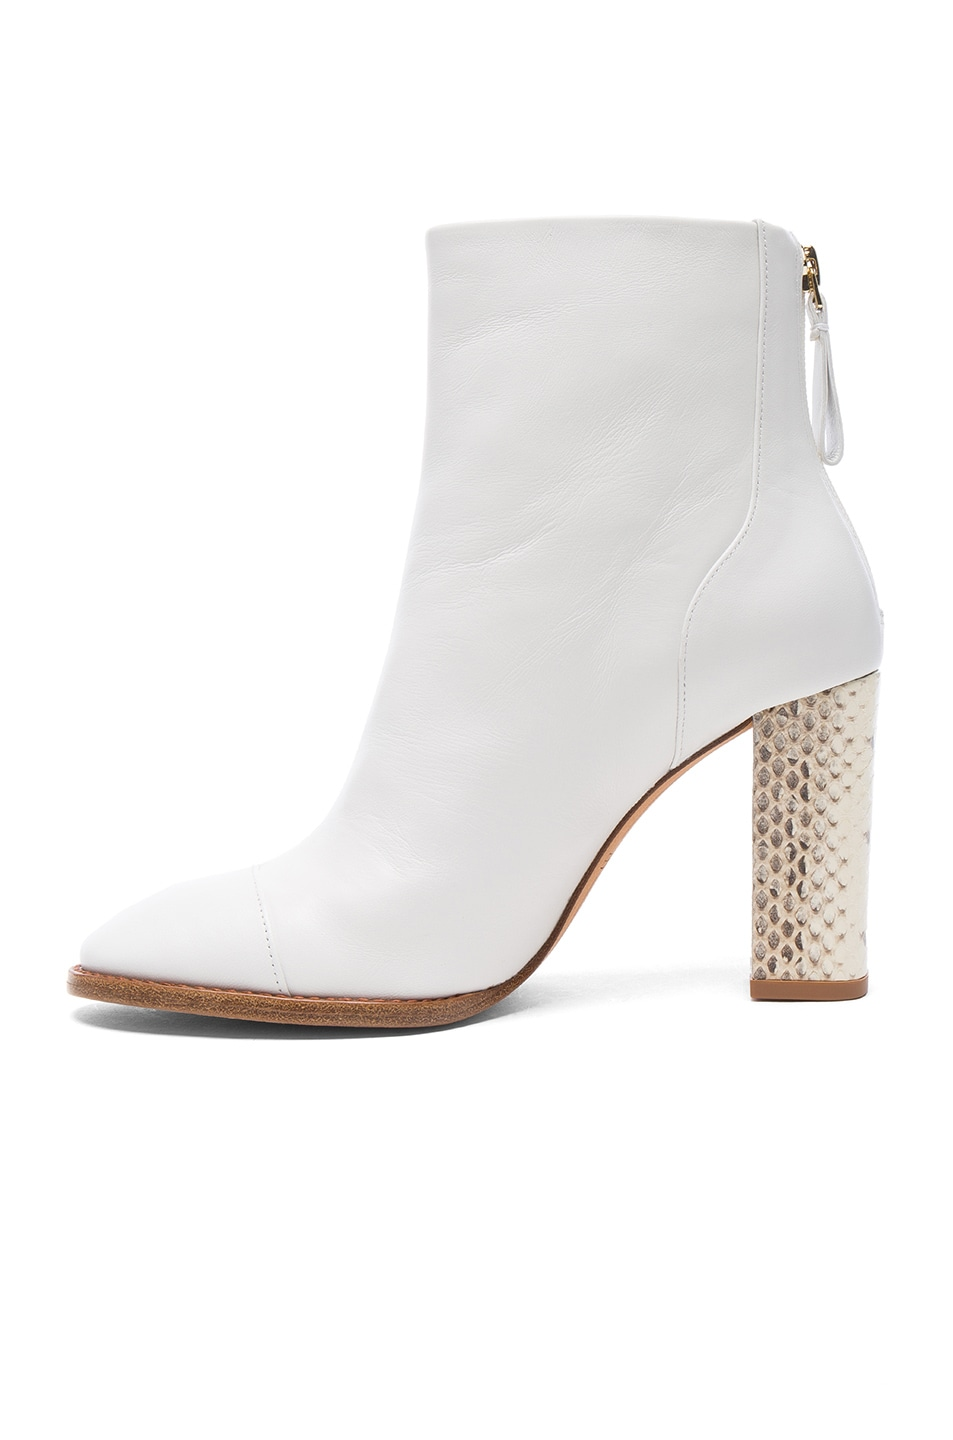 Image 5 of Alexandre Birman Leather Bibiana Watersnake Booties in White & Natural